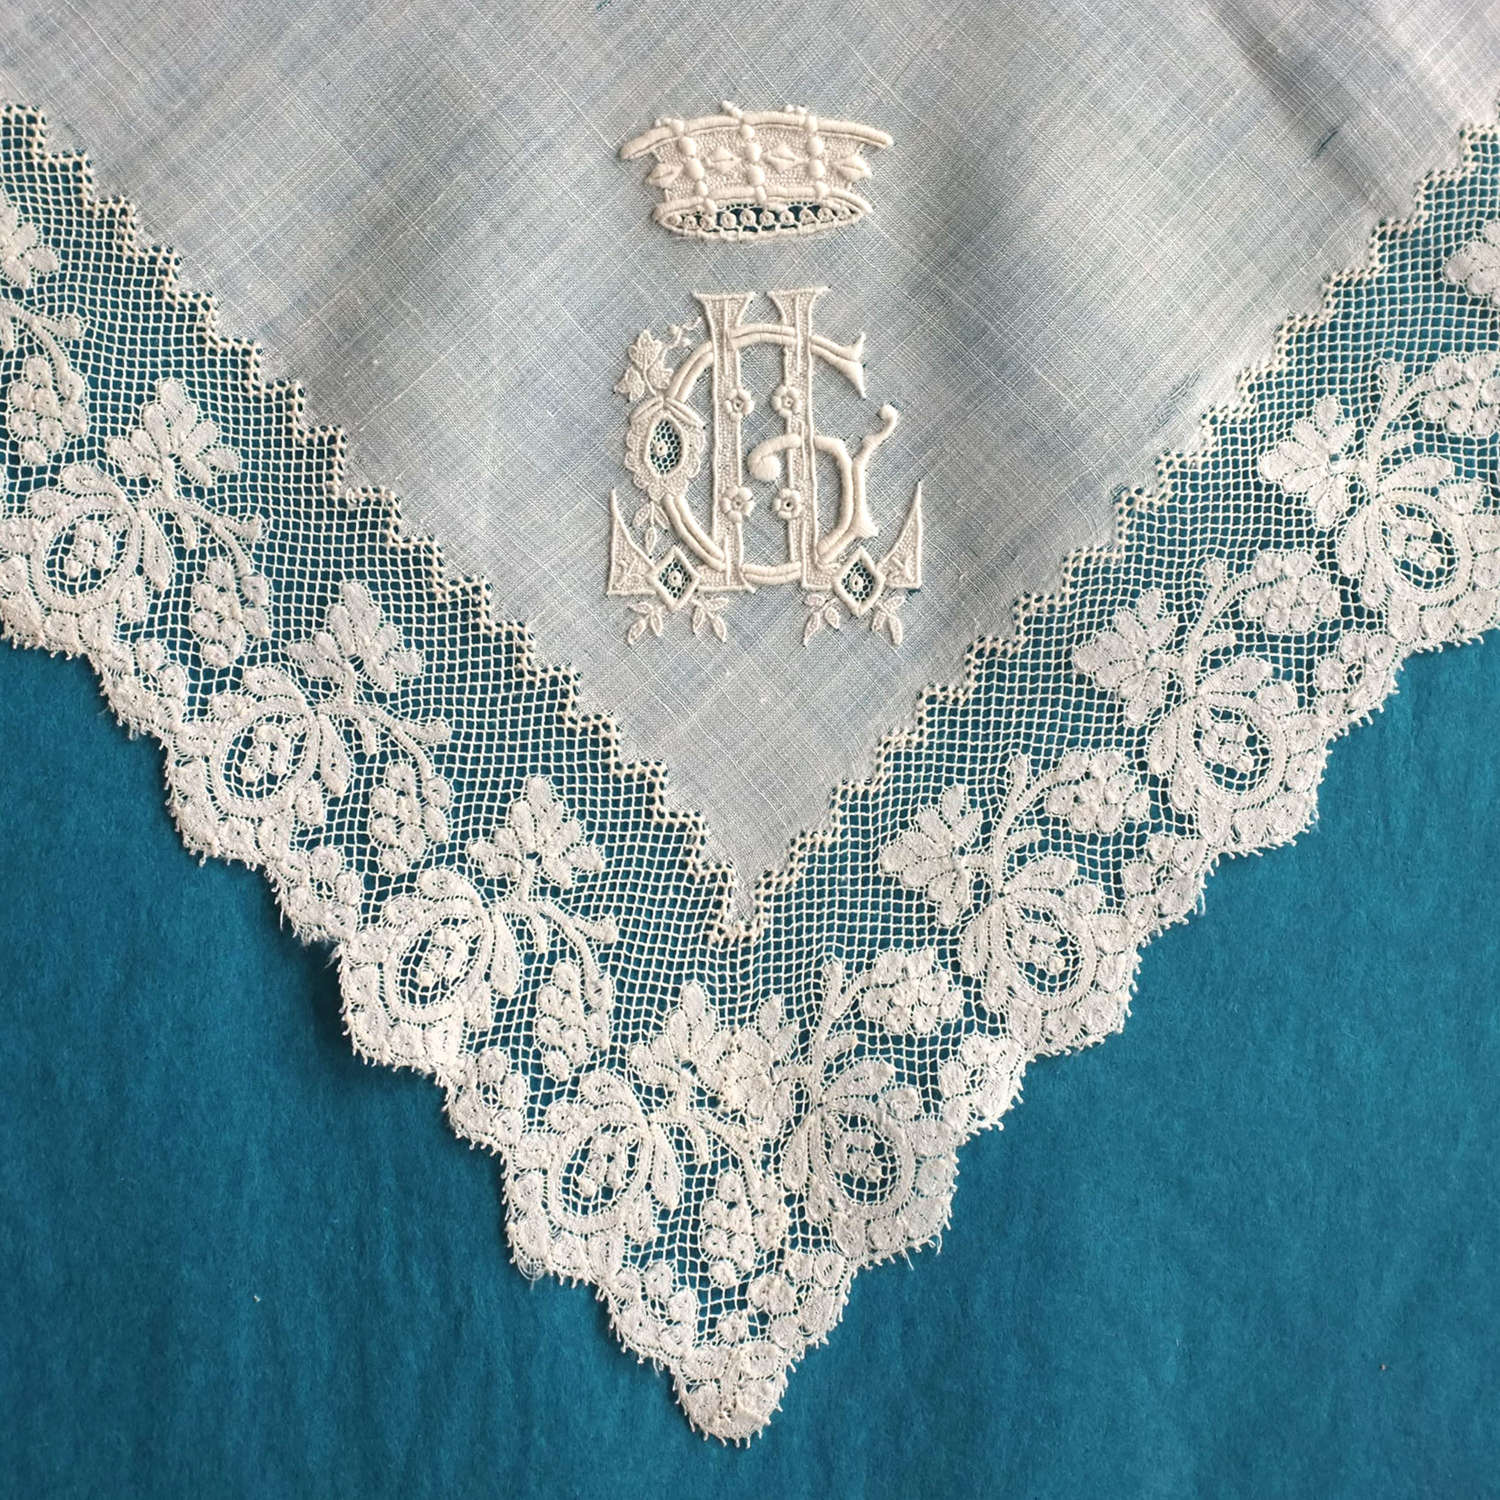 Antique Late 19th Century Handkerchief with Coronet of a Baron